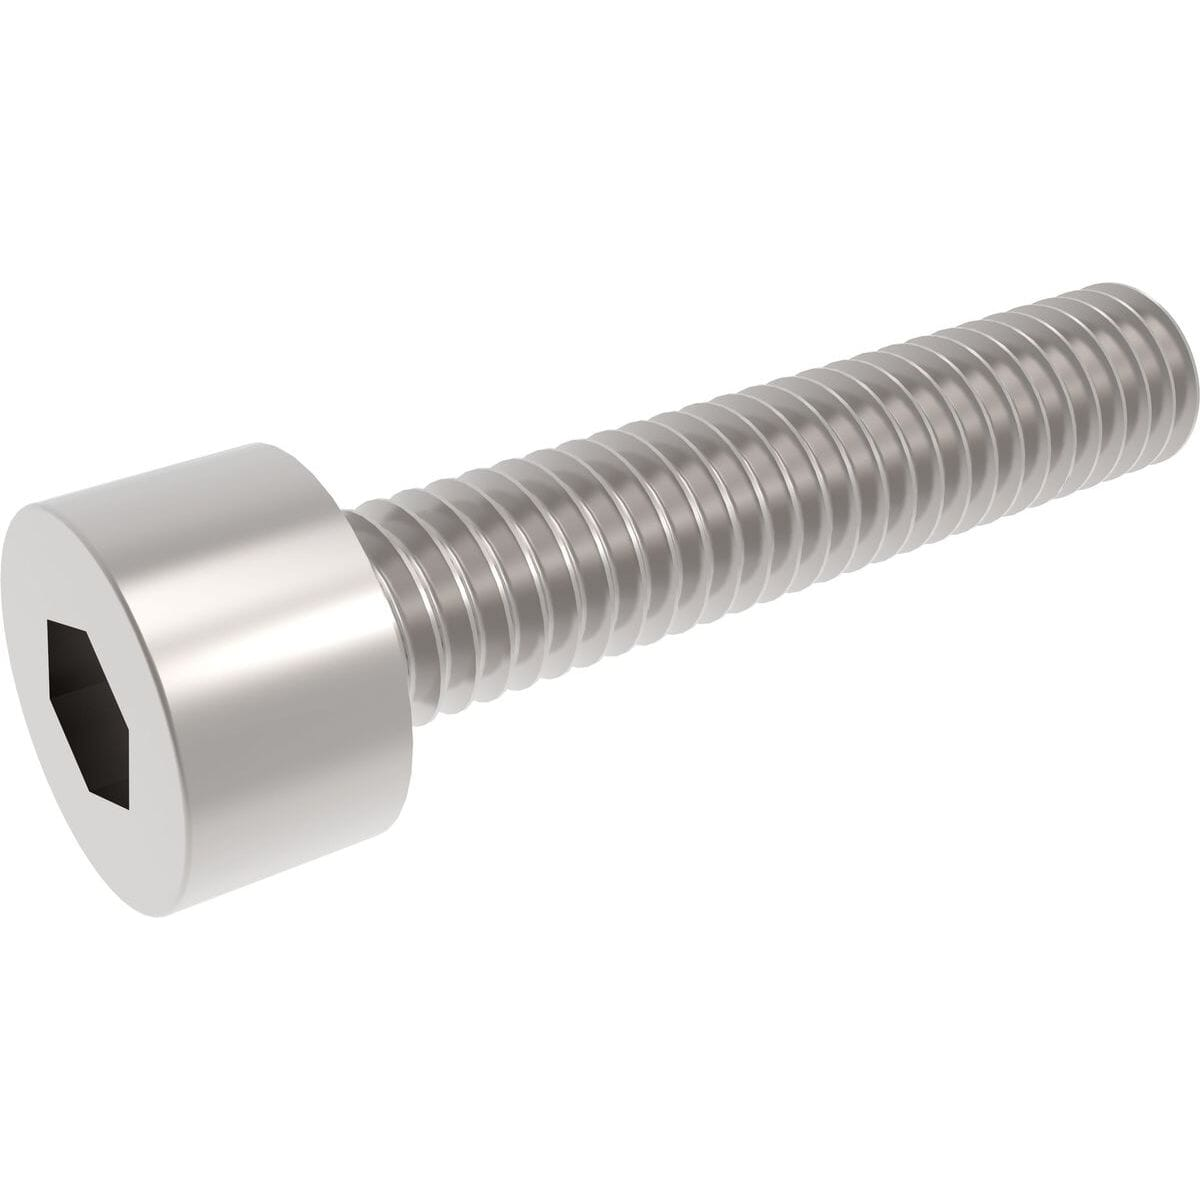 M5 x 12mm Full Thread Cap Head Screws (DIN 912) - Stainless Steel (A2)